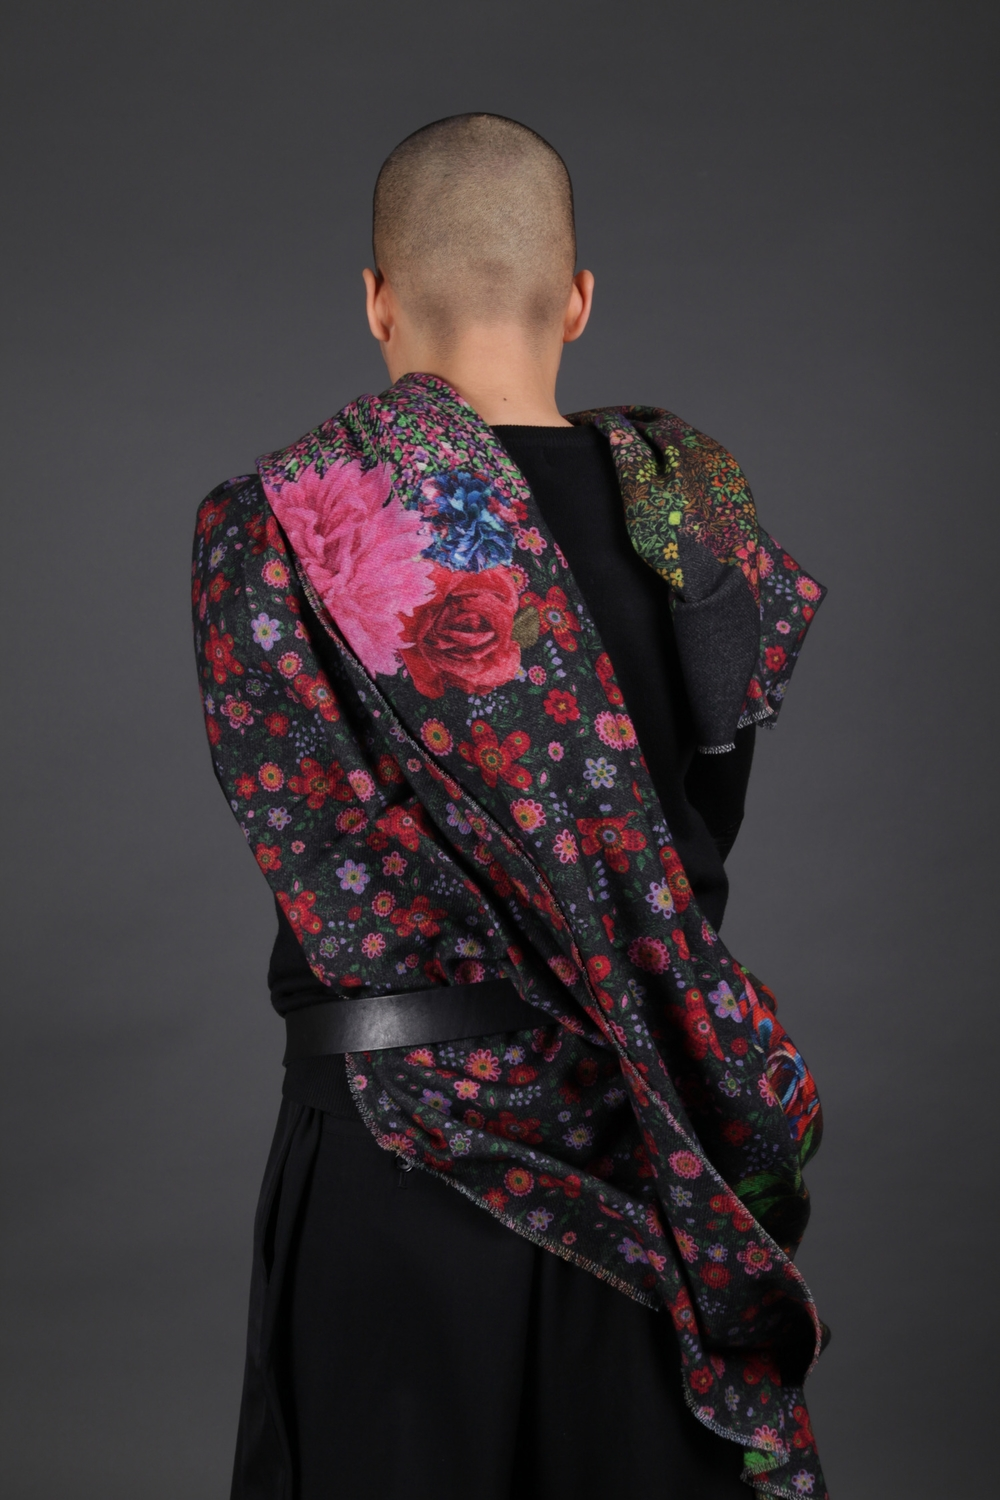 Pierre Louis Mascia, FW 15-16, FLowers